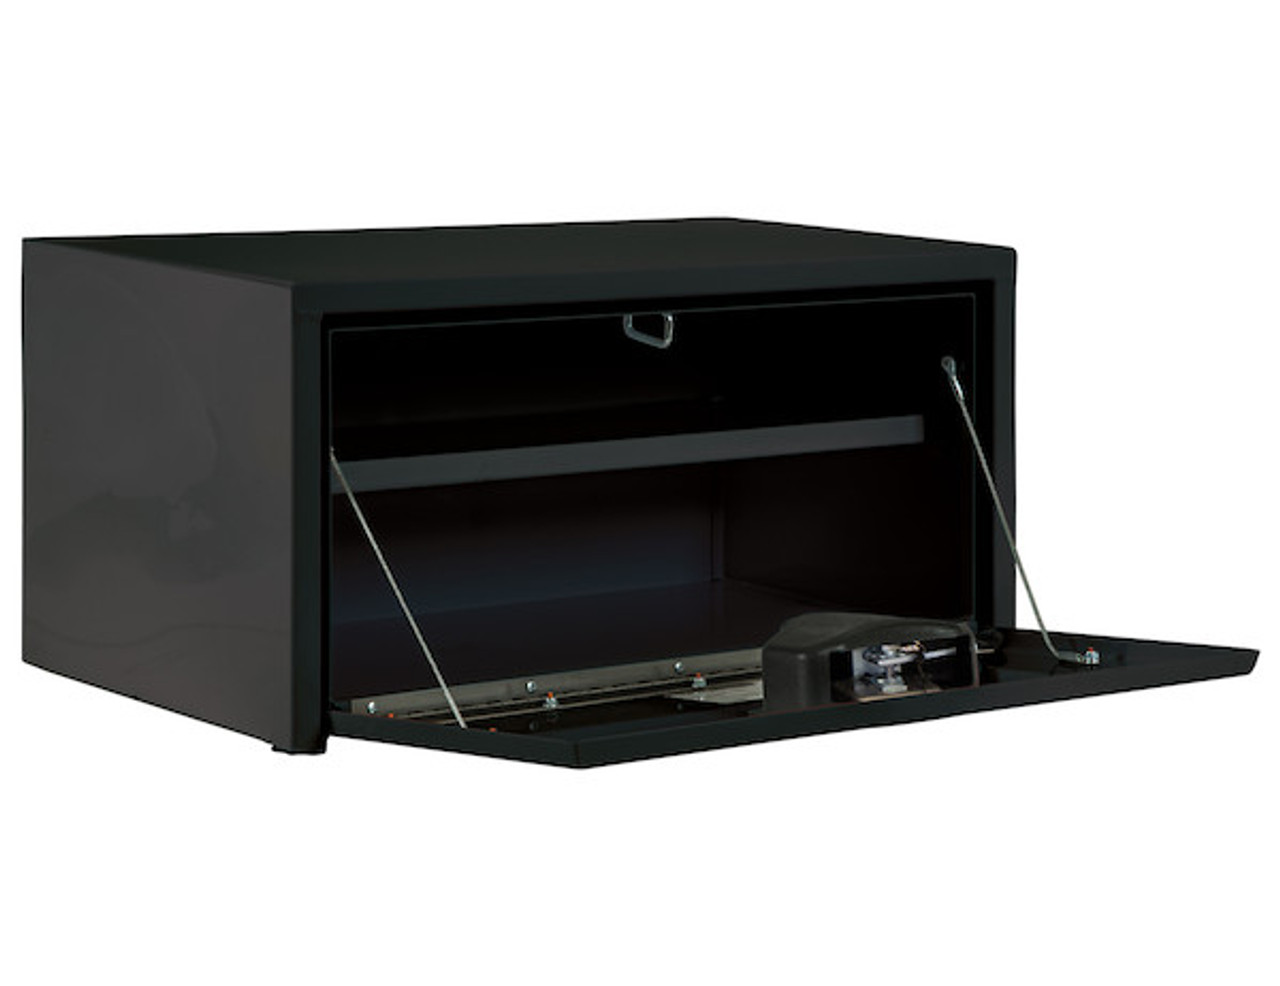 """1703304 BUYERS PRODUCTS BLACK STEEL UNDERBODY TRUCK TOOL BOX WITH BUILT-IN SHELF 14""""HX16""""DX30""""W Picture # 2"""